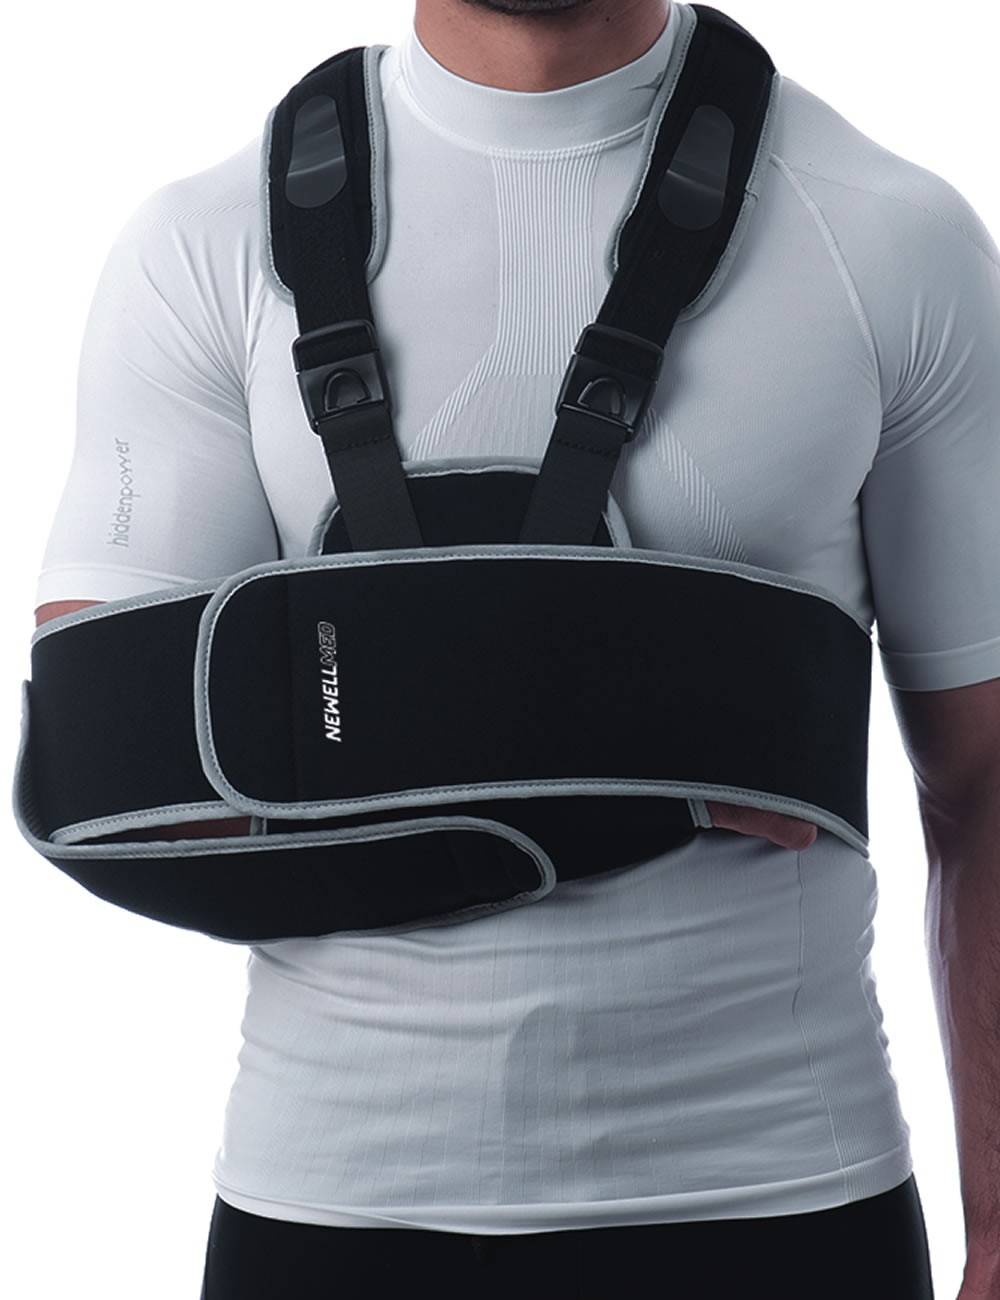 SK403 - Immobilizing arm-shoulder support